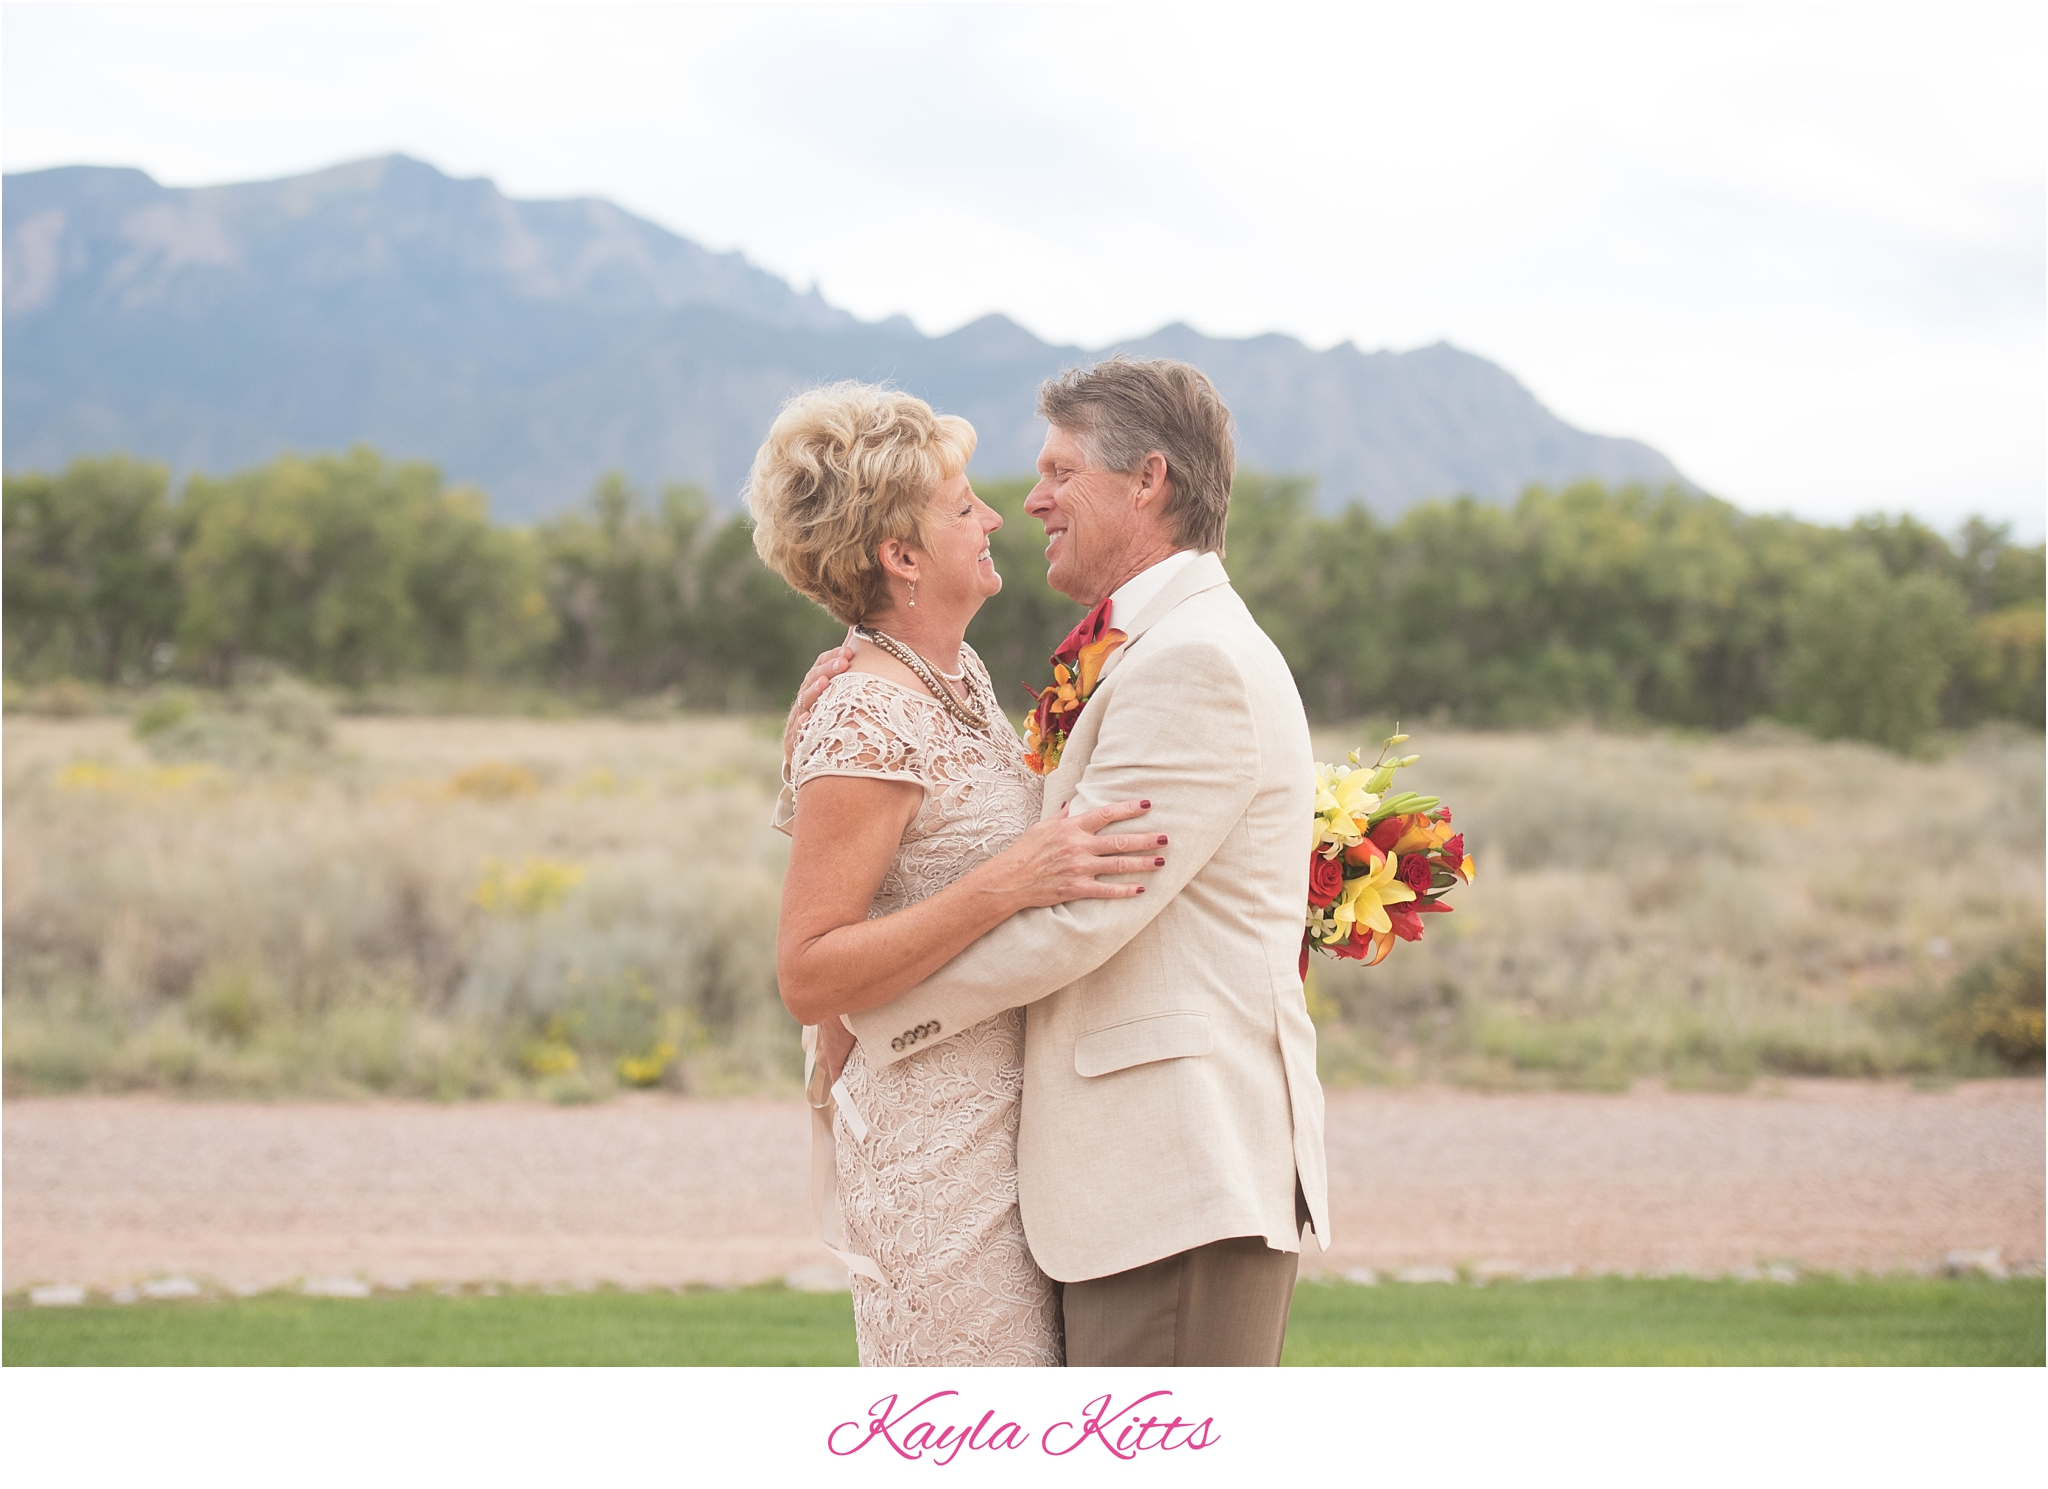 kayla kitts photography - albuquerque wedding photographer - albuquerque wedding photography - albuquerque venue - hyatt tamaya - hyatt tamaya wedding - new mexico wedding photographer_0049.jpg